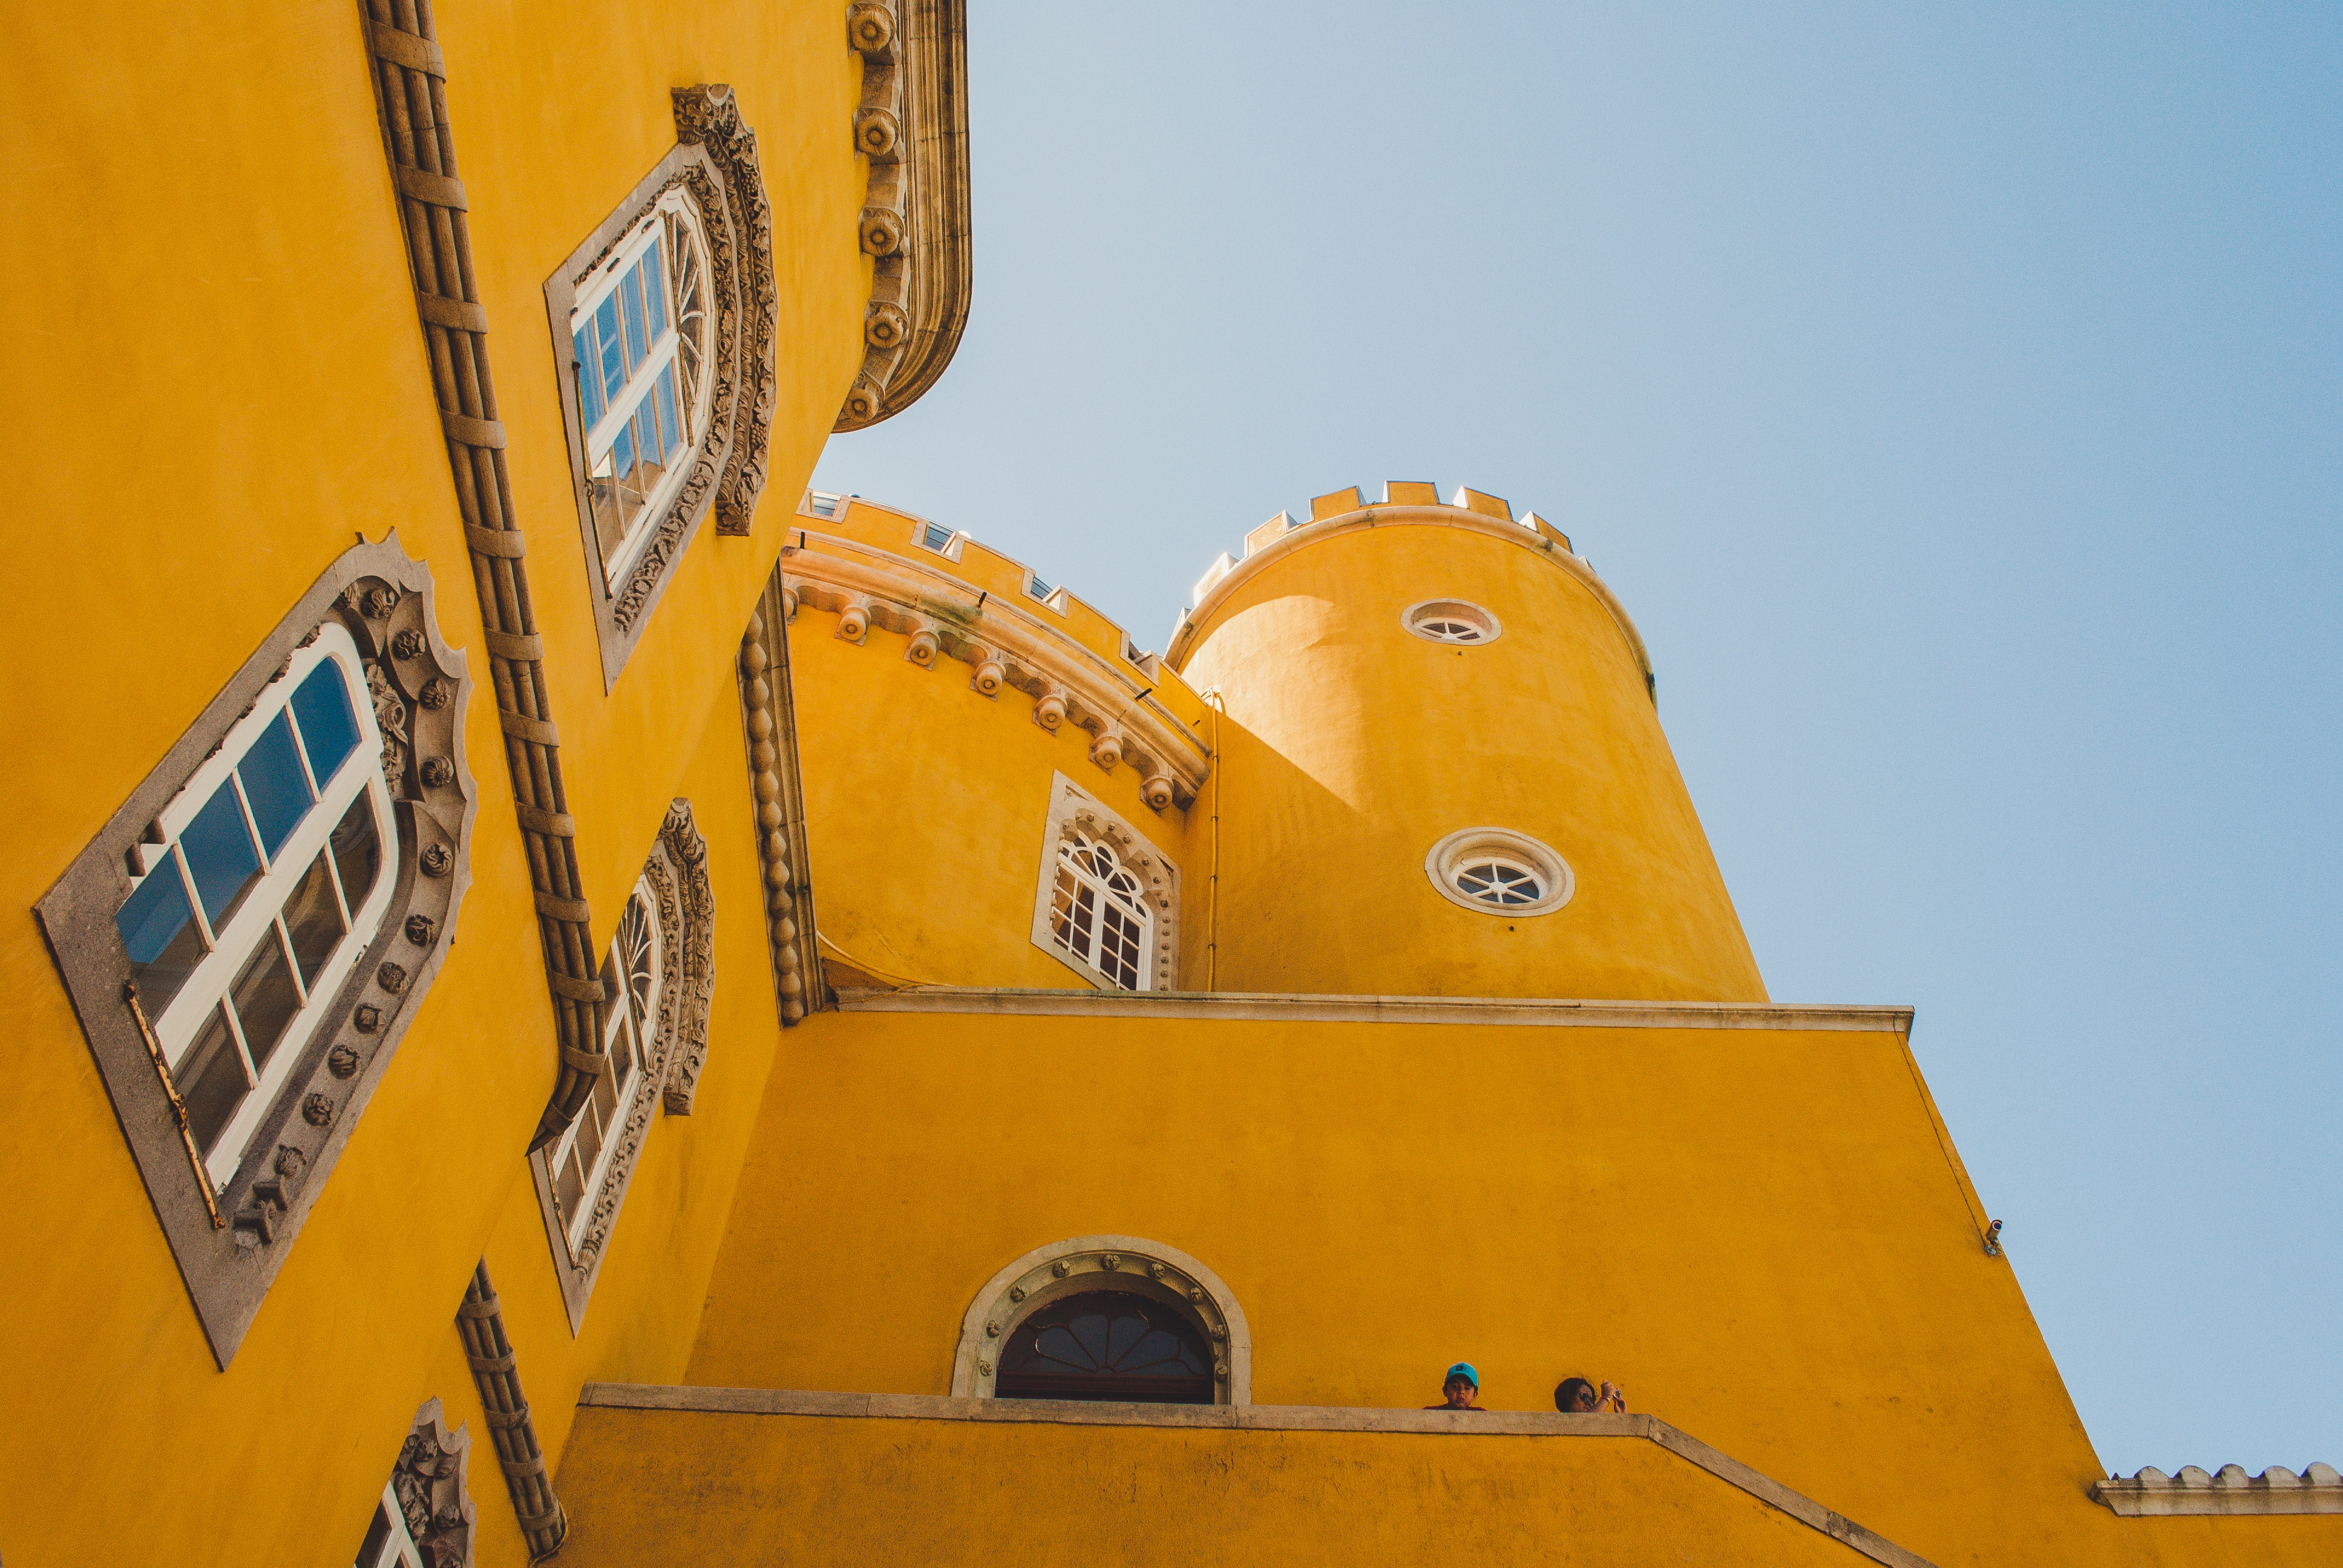 Close-up of a yellow castle in Portugal